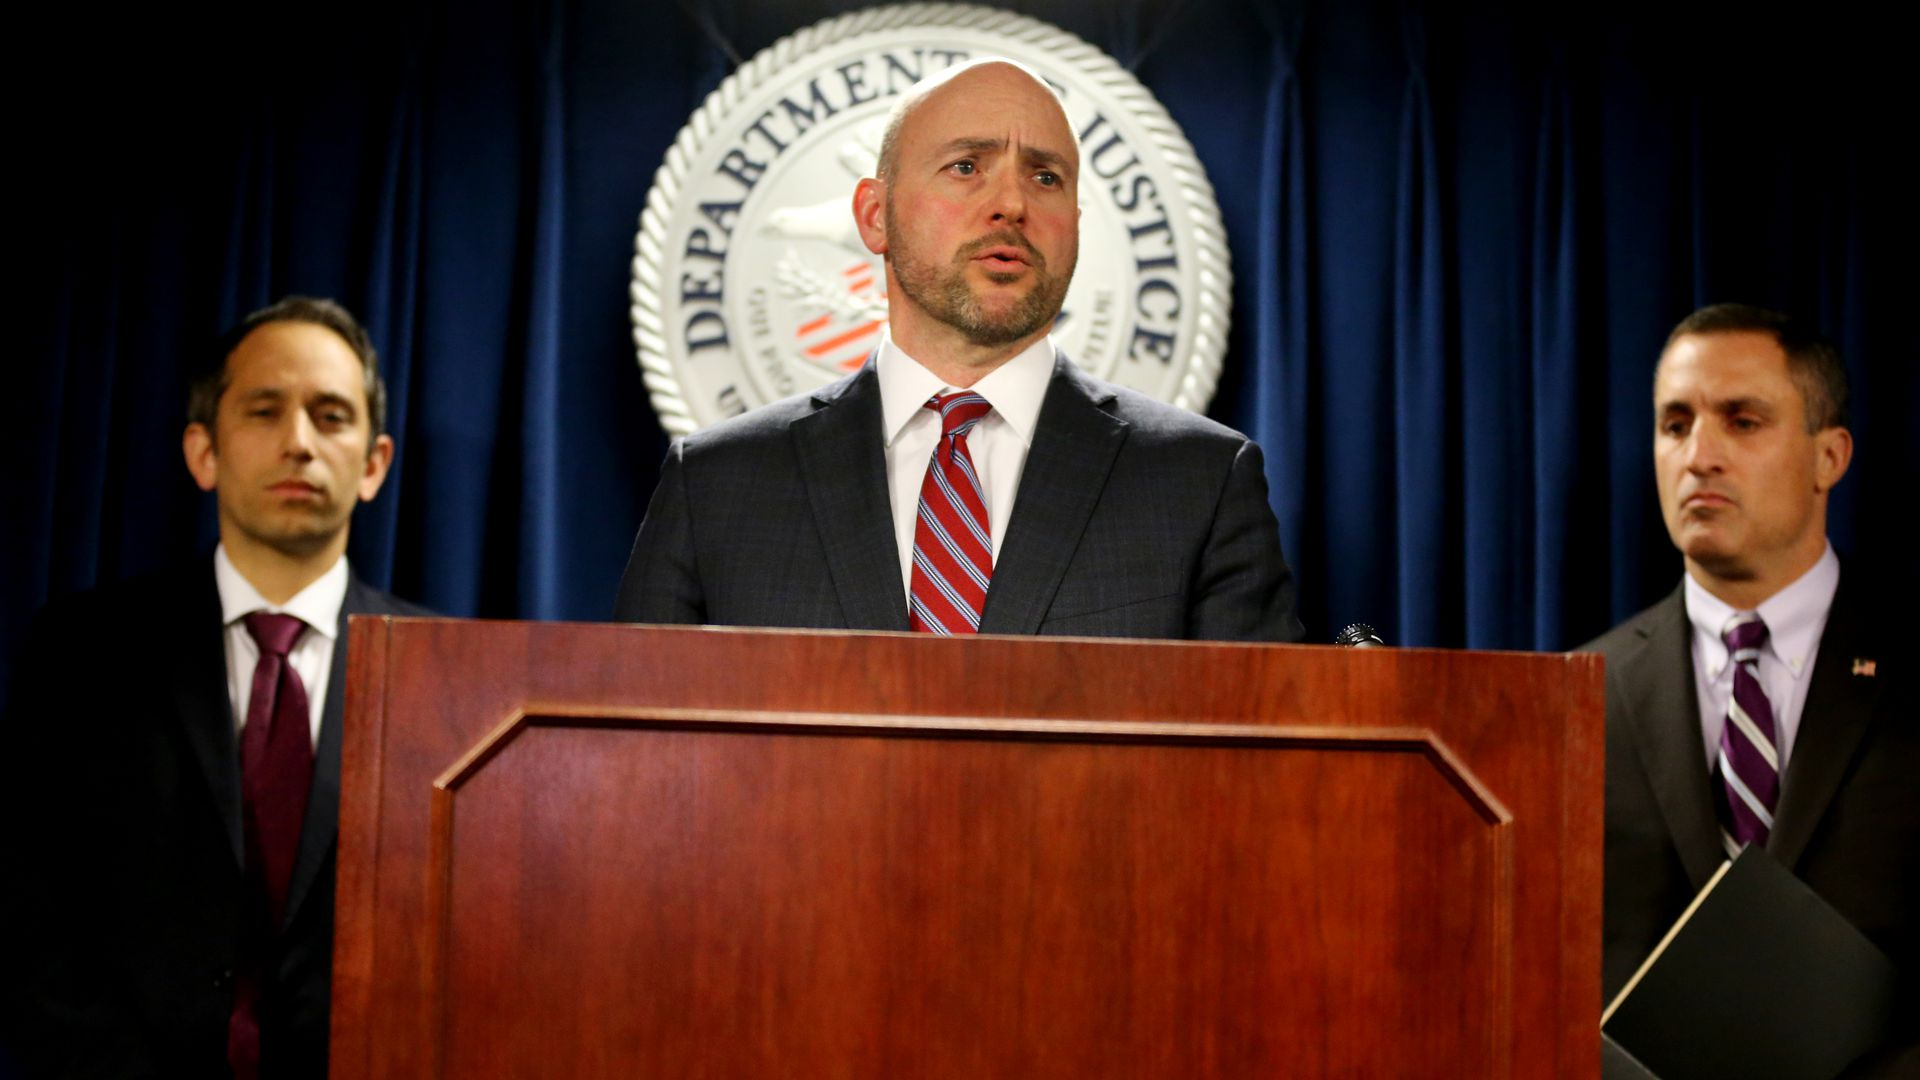 U.S. Attorney Andrew E. Lelling announcing charges against dozens of individuals involved in a nationwide college admissions cheating and recruitment scheme.